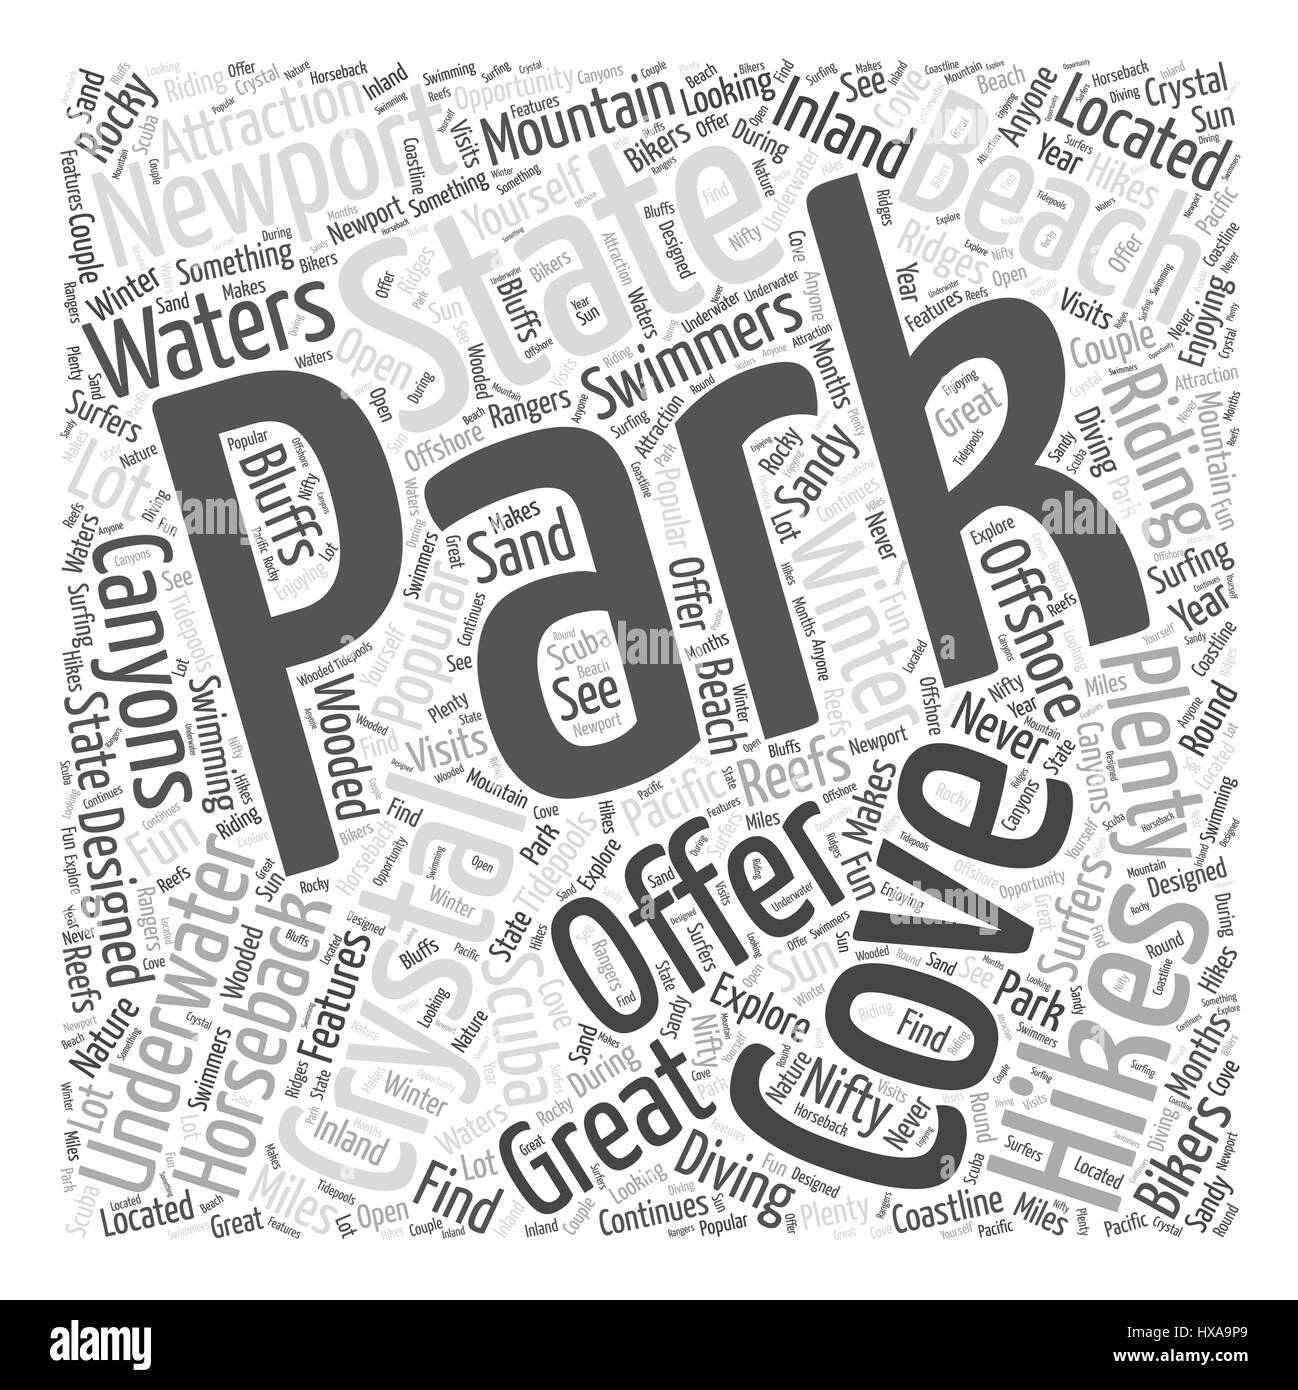 Crystal Cove State Park Word Cloud Concept - Stock Vector